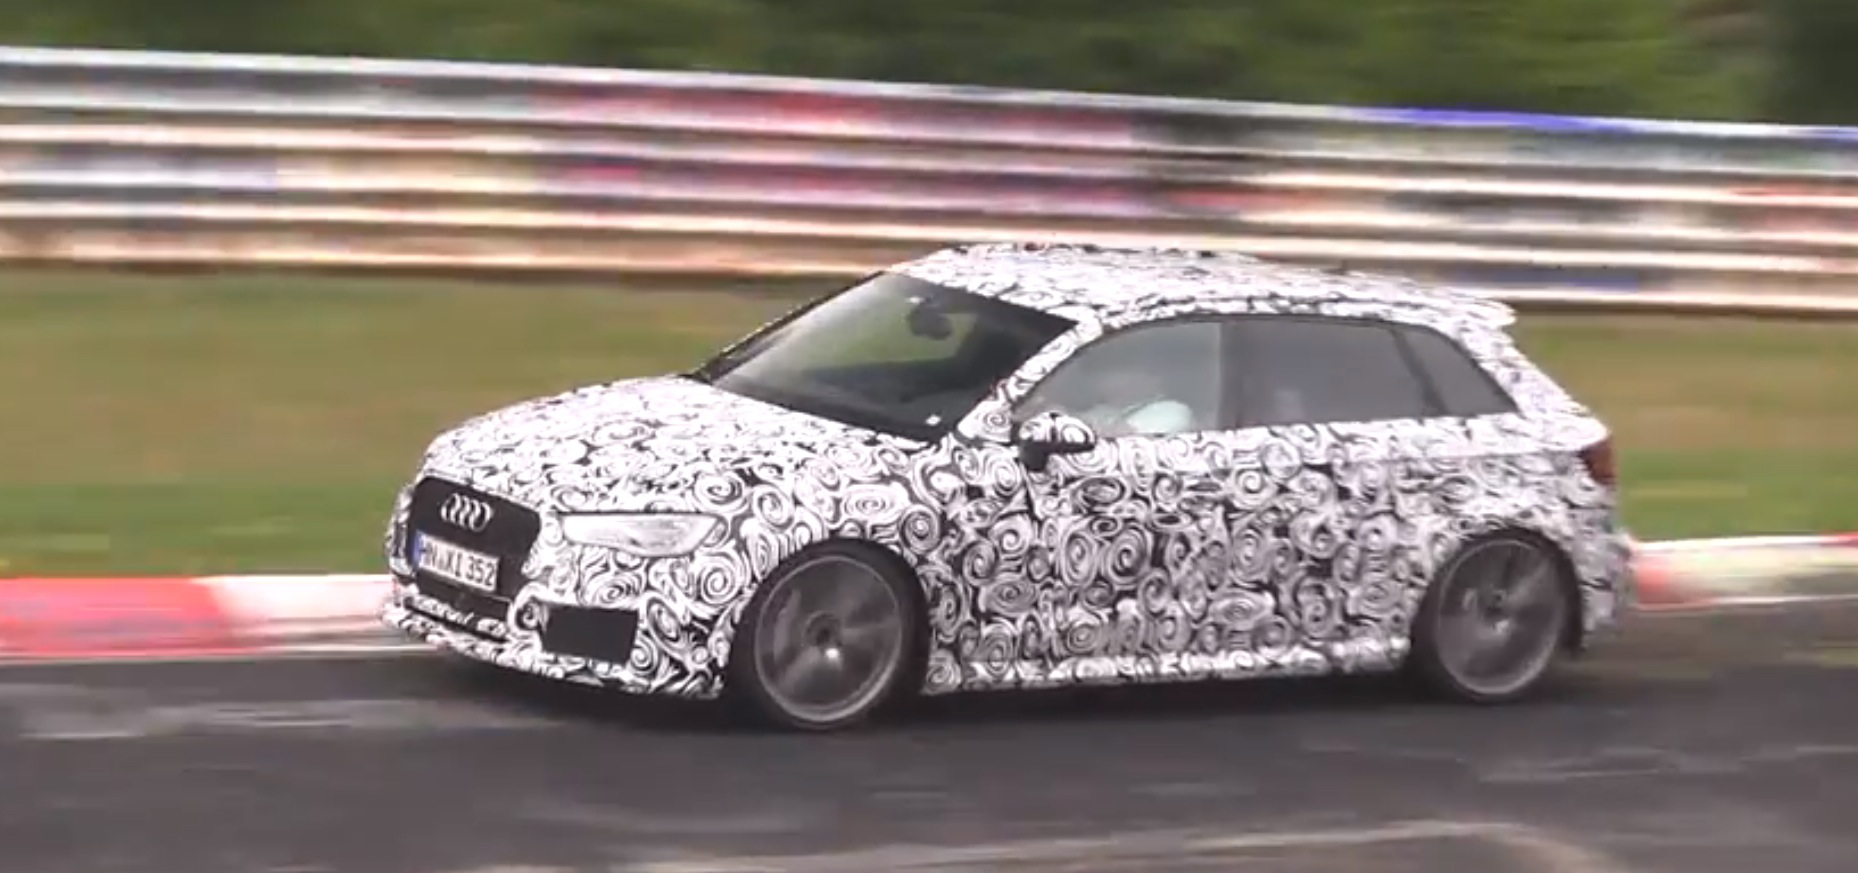 The 8V RS3 Could Be 2015's Most Talked About Audi - autoevolution